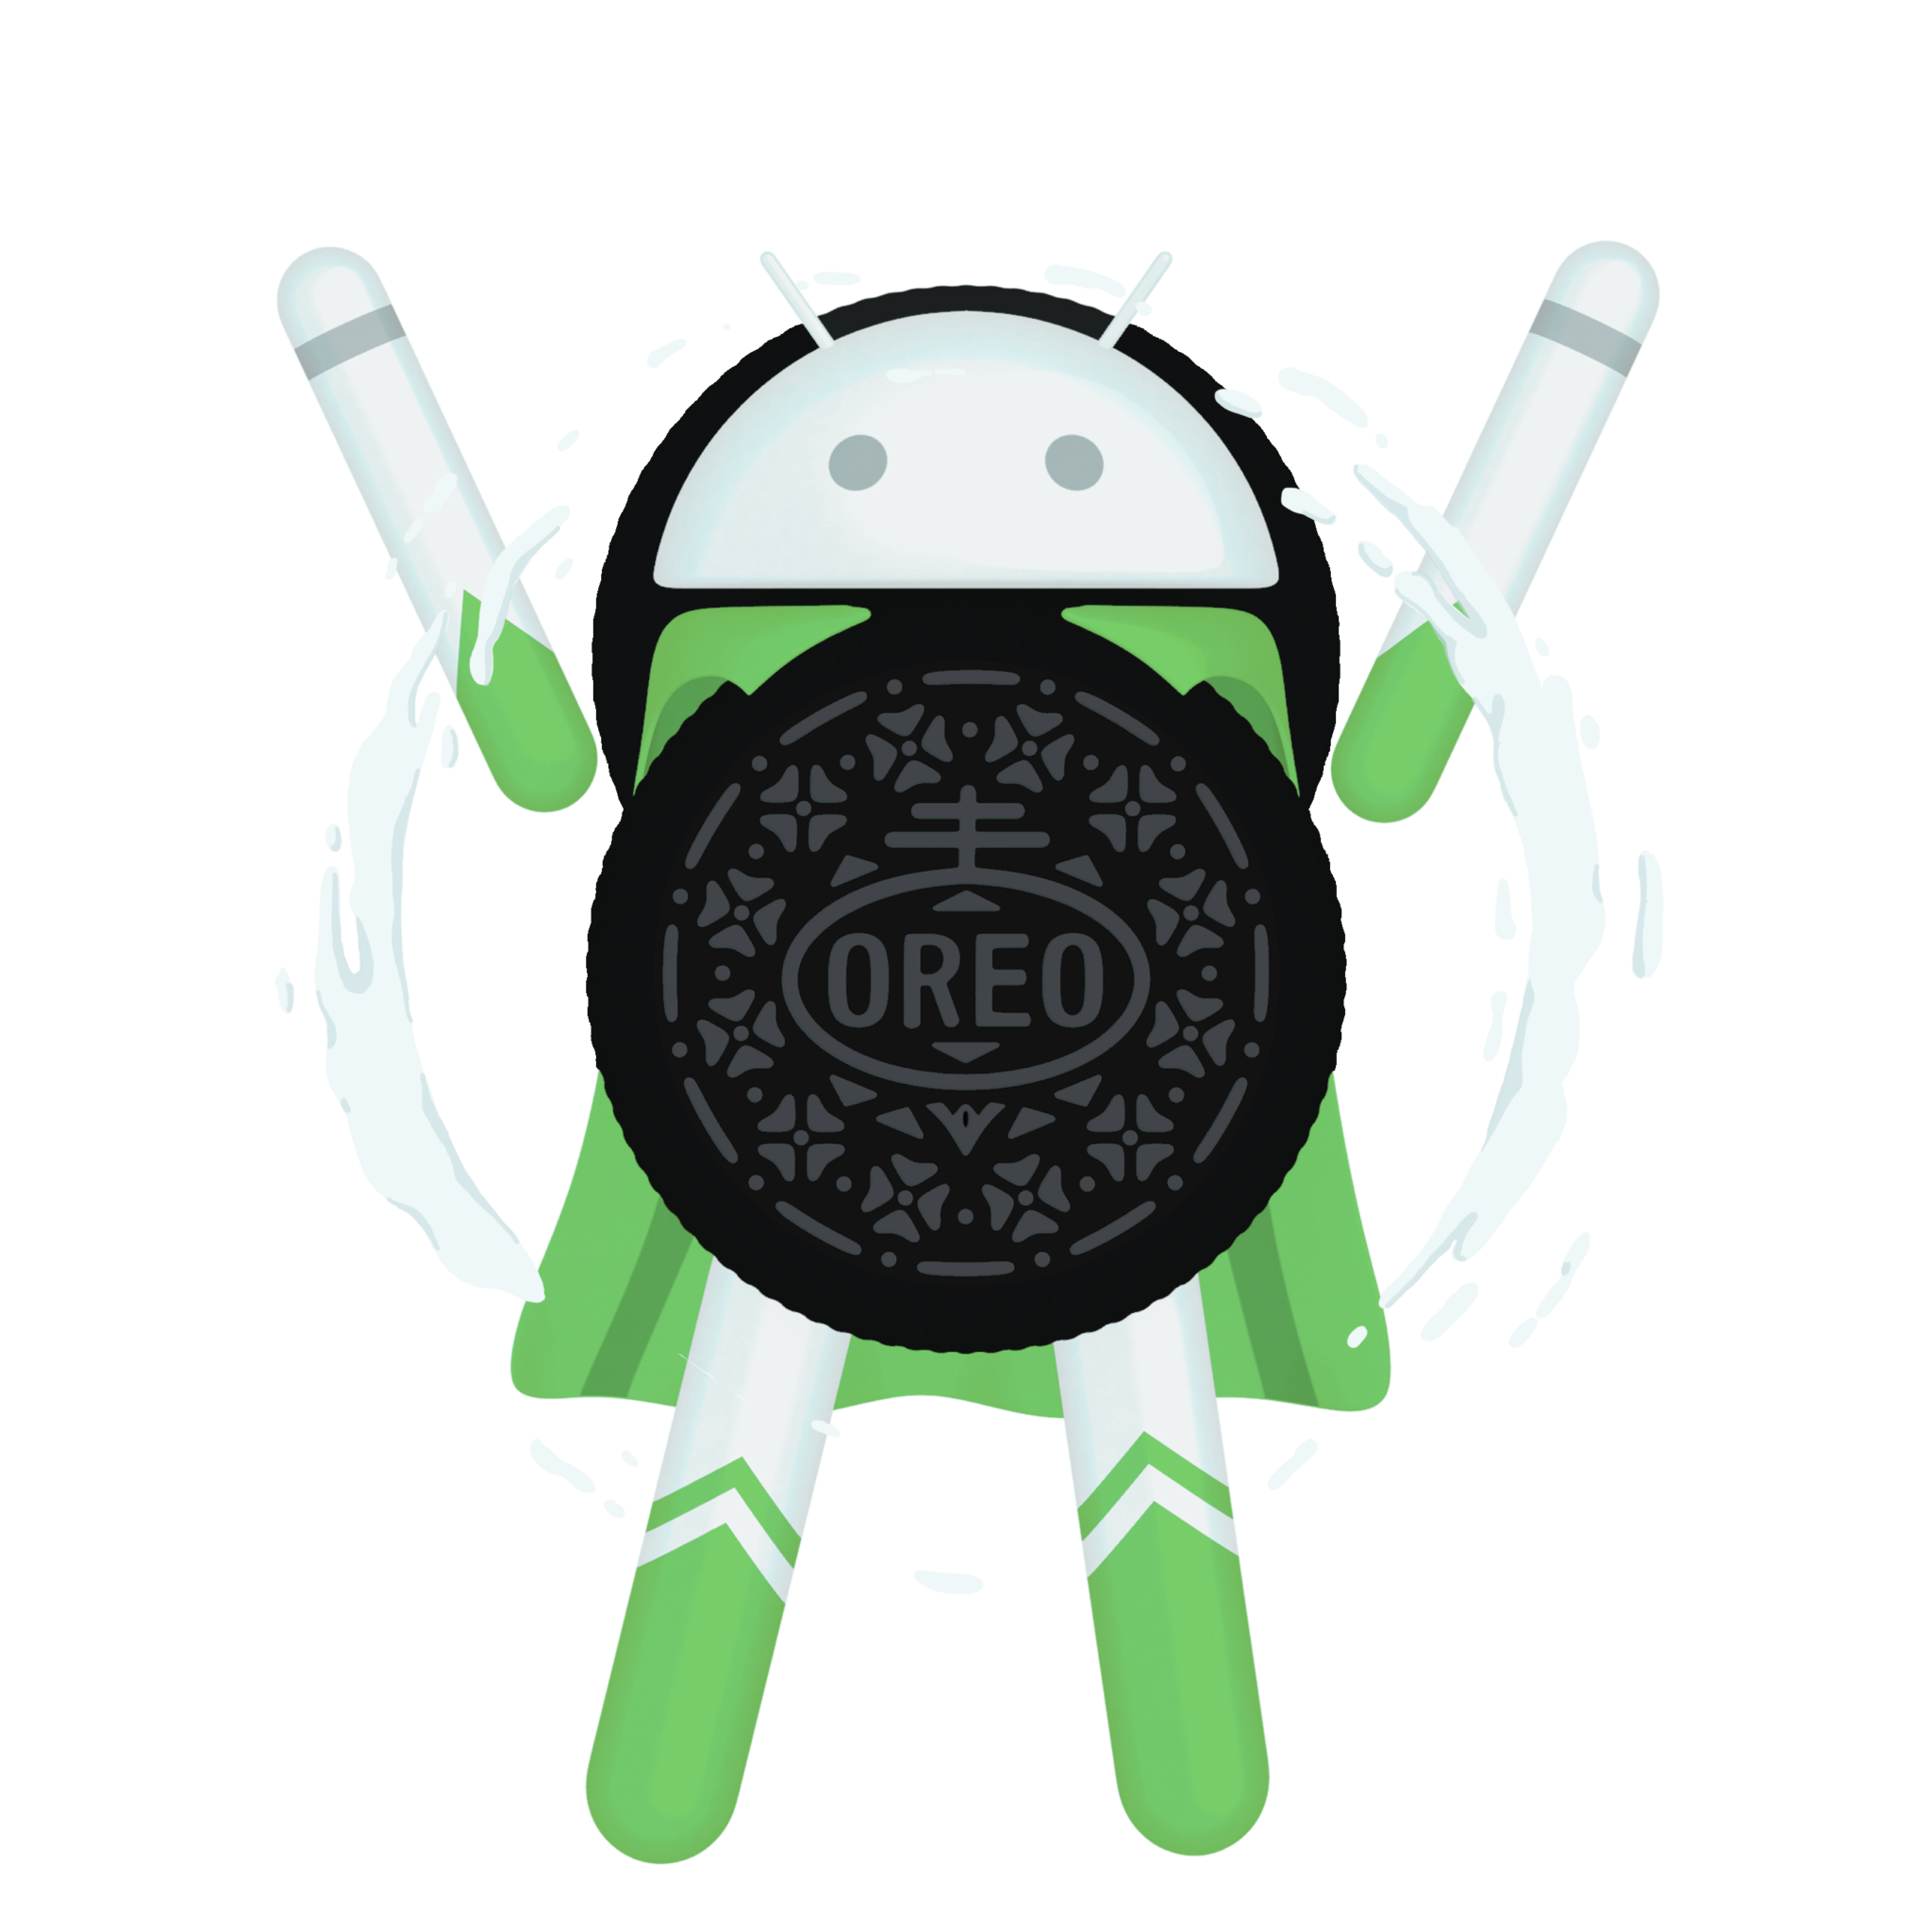 Oreo clipart advertisement. Android powerful njtechreviews advertisements